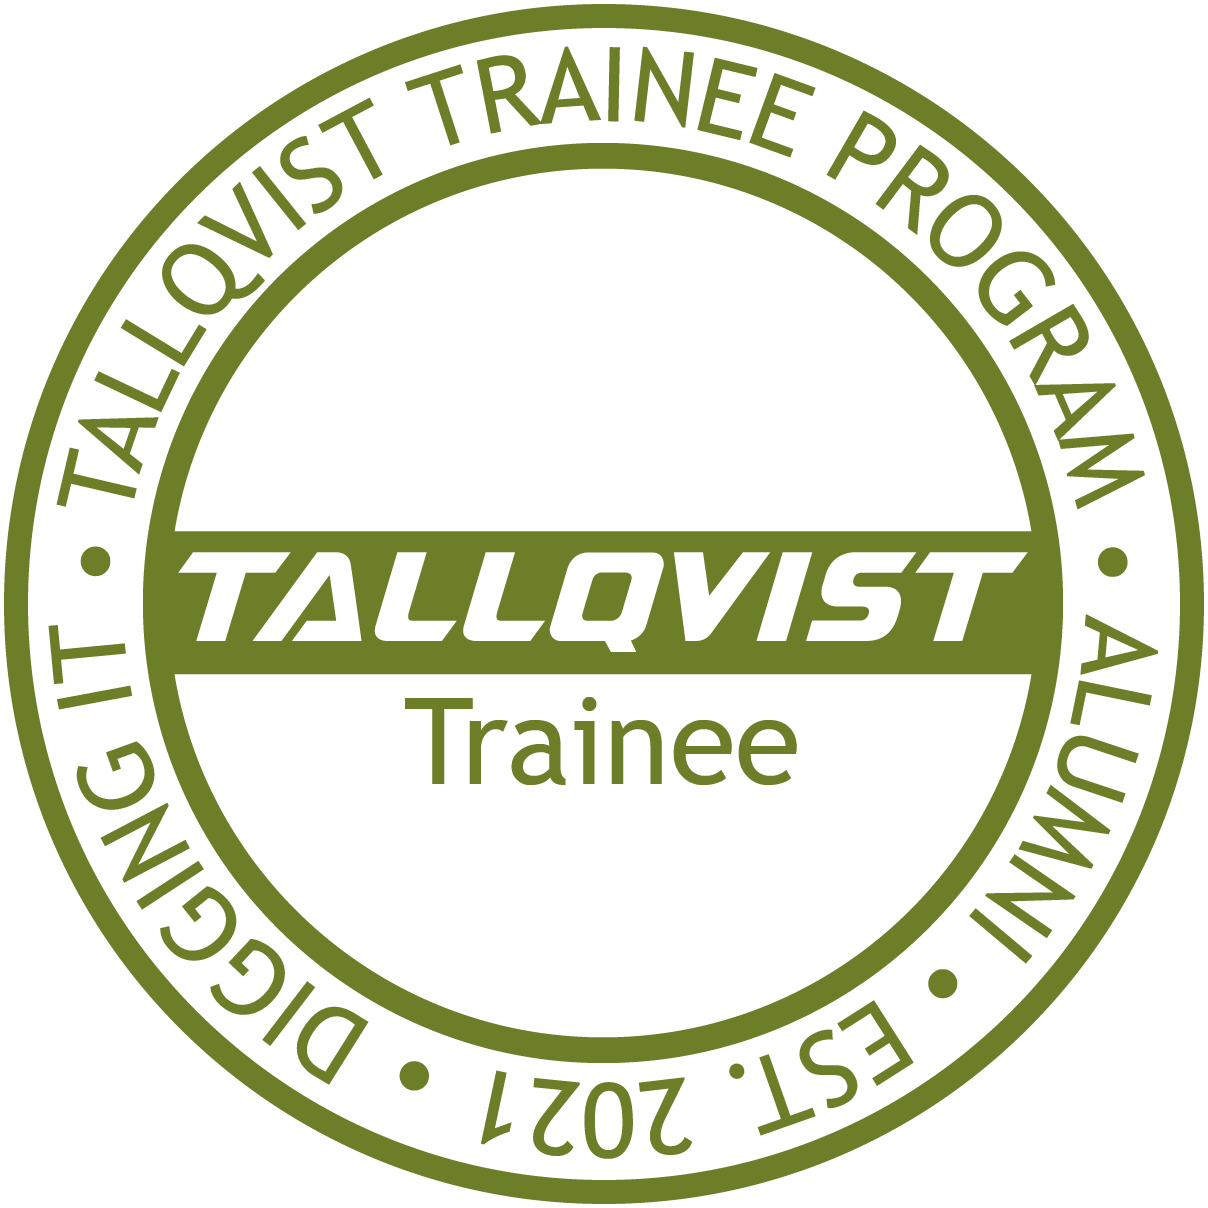 Tallqvist offers the future superstars of the construction industry a possibility to get acquainted with civil & infrastructure projects through a site managers and supervisors lens